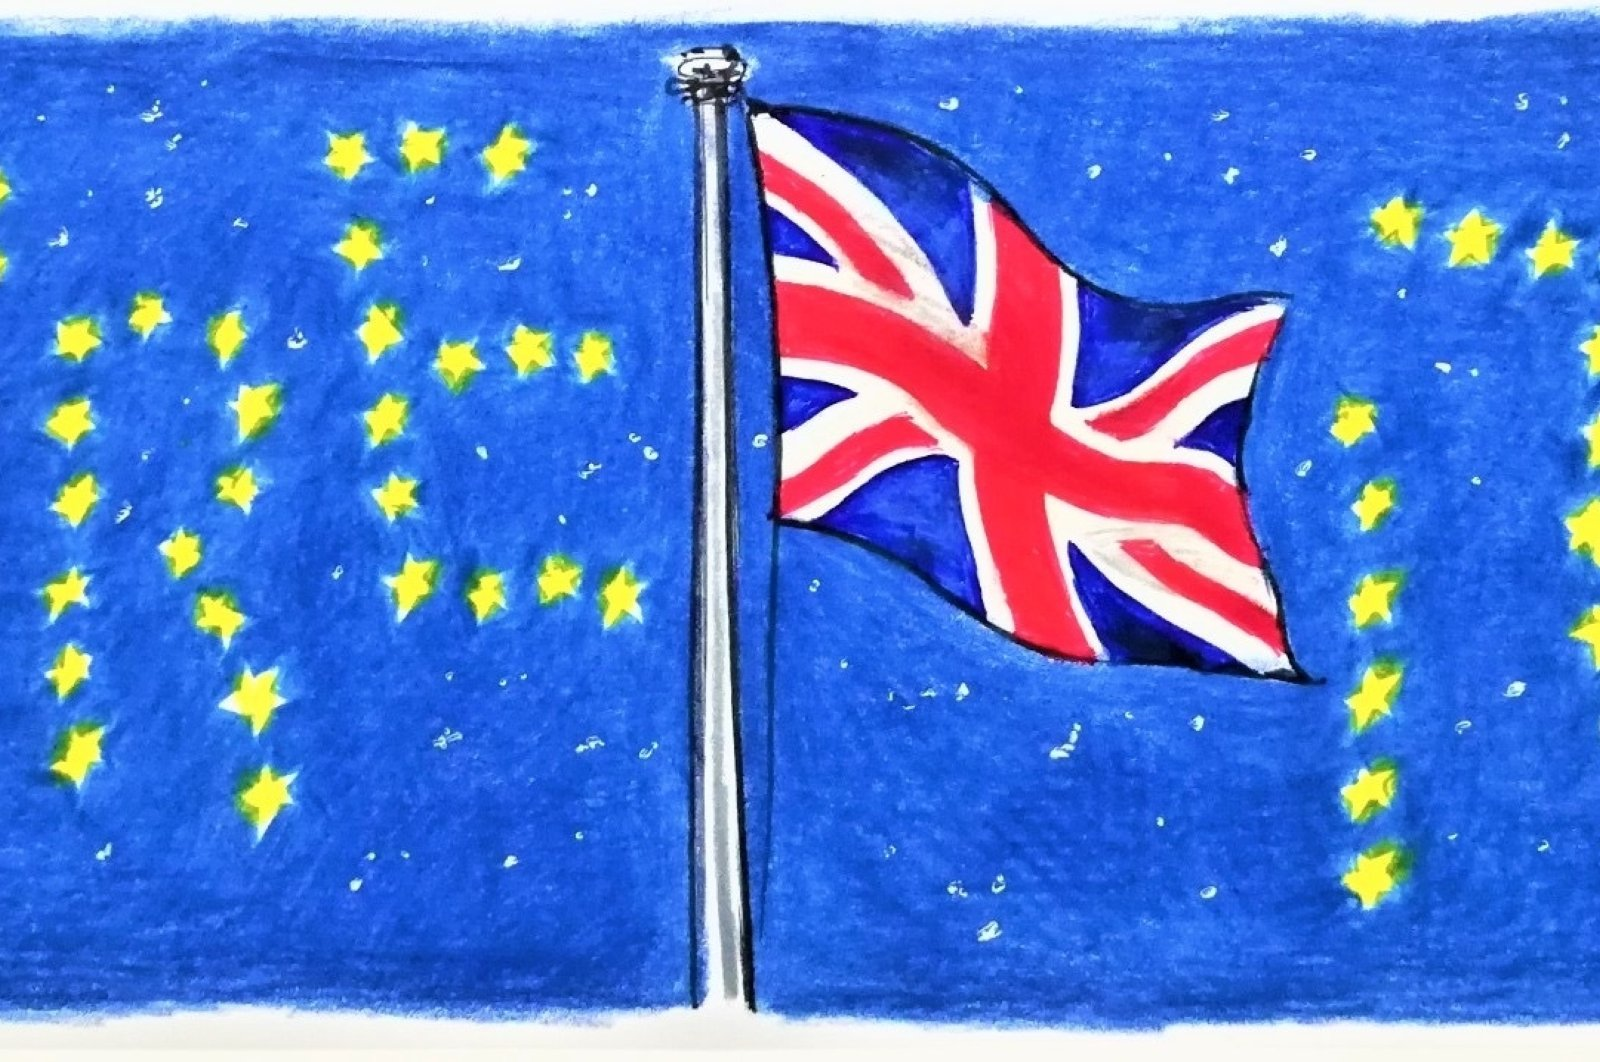 Illustration by Erhan Yalvaç, shows stars and United Kingdom flag forming the word Brexit.